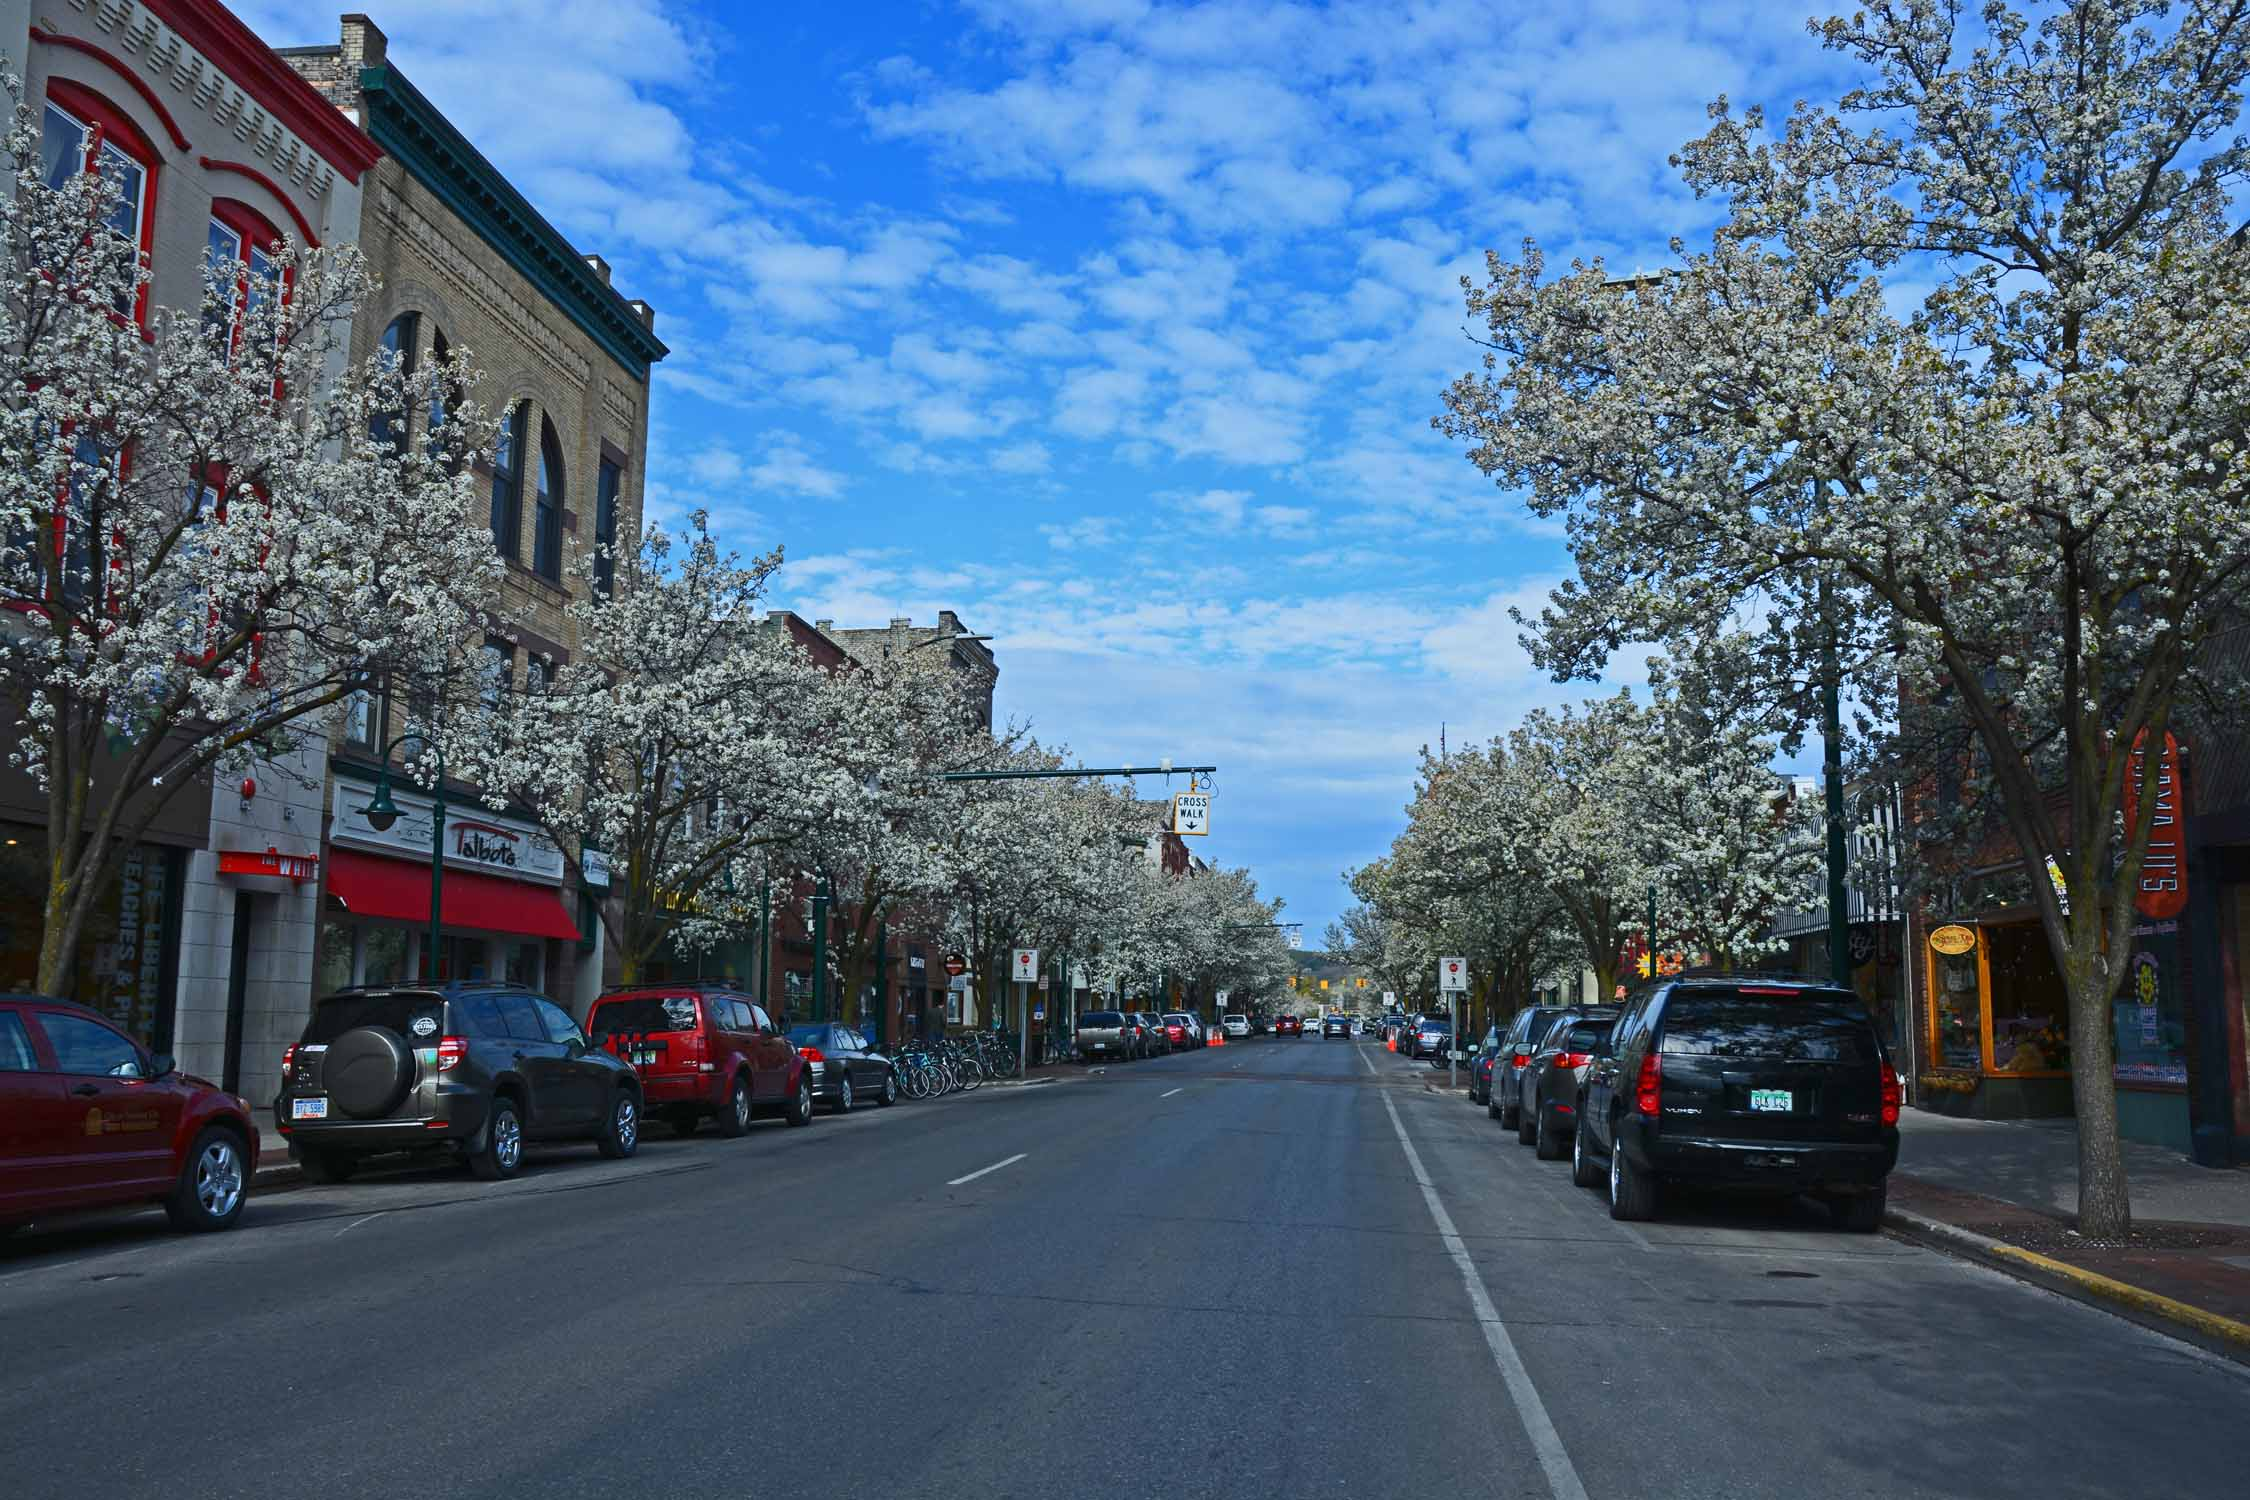 Spring welcomed us back to Traverse City with all the flowering trees!